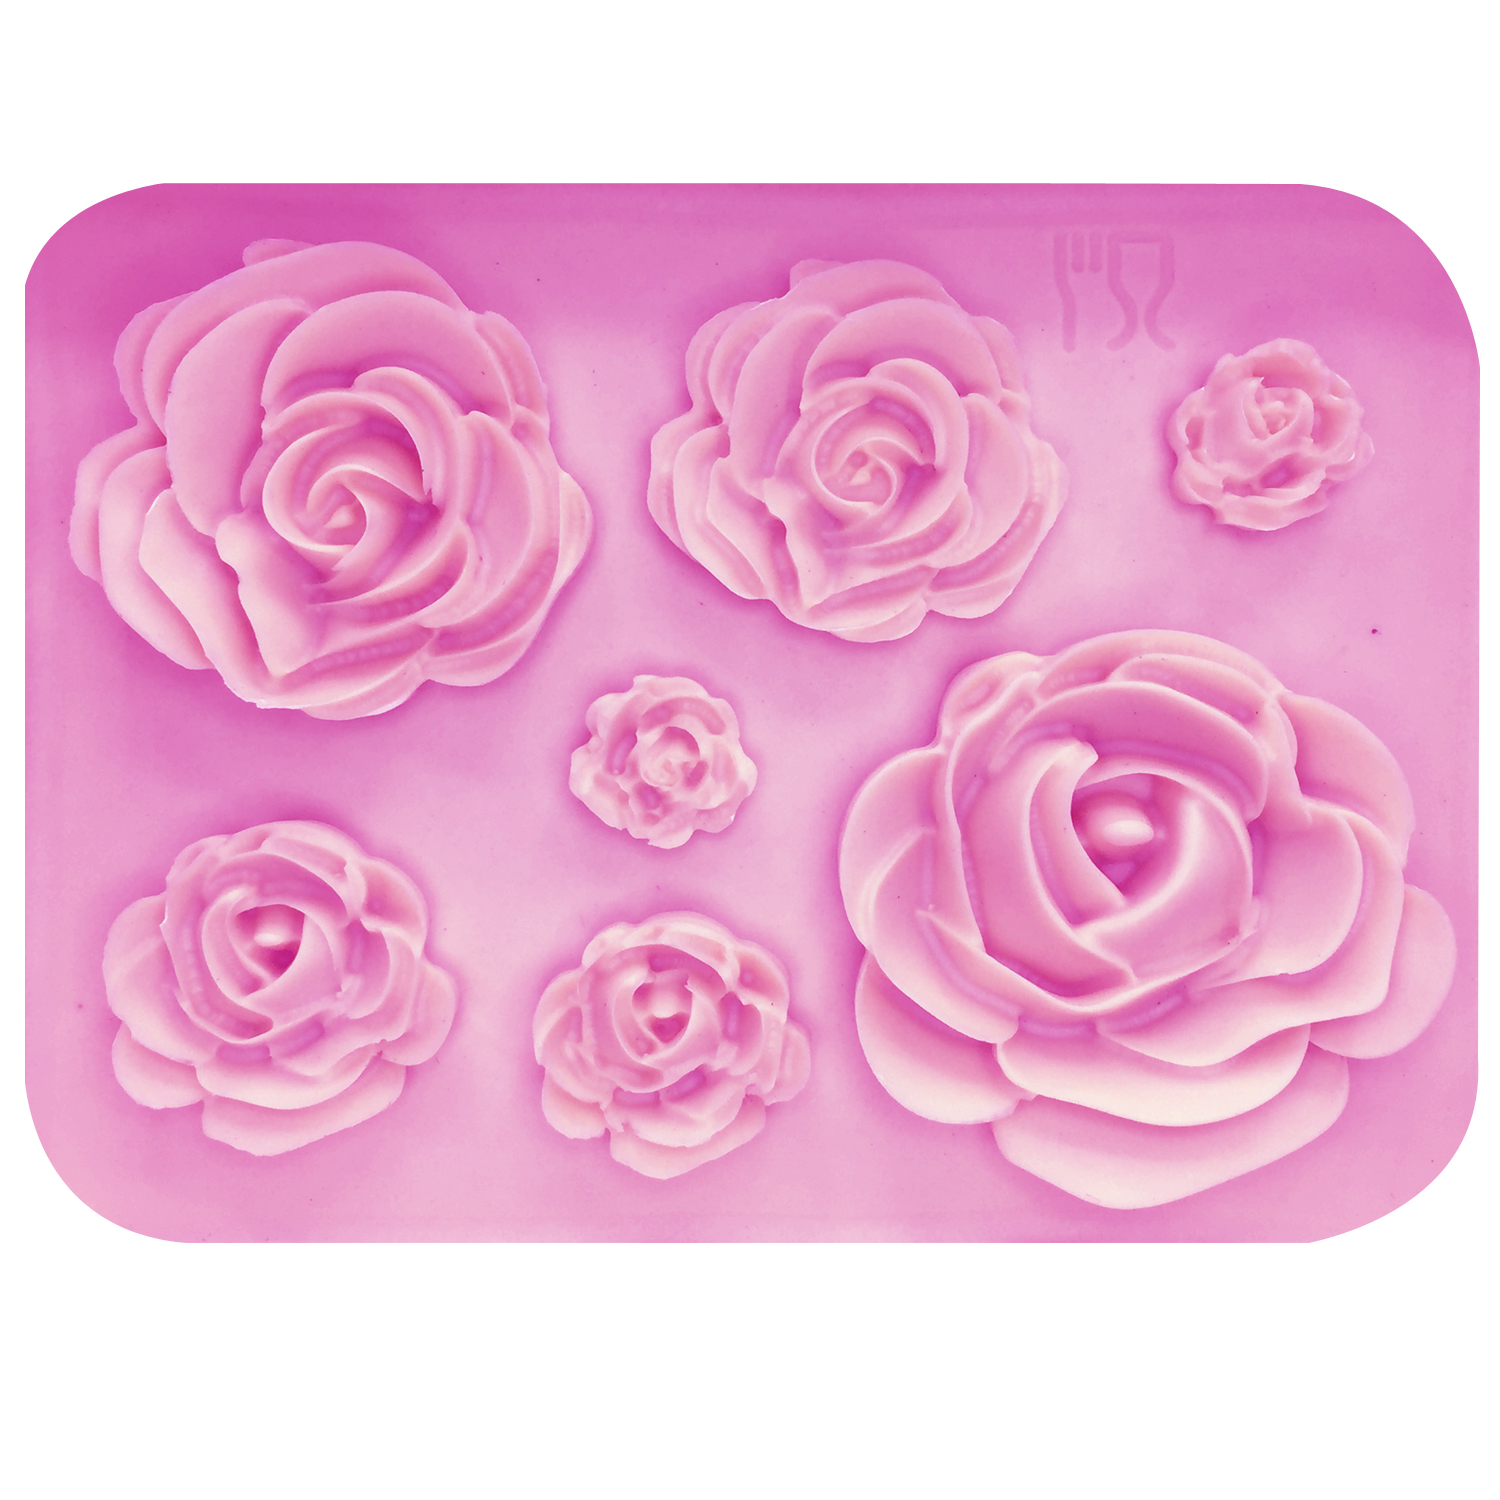 ALIJIAYING M1023 Rose Flowers Silicone Mold Chocolate